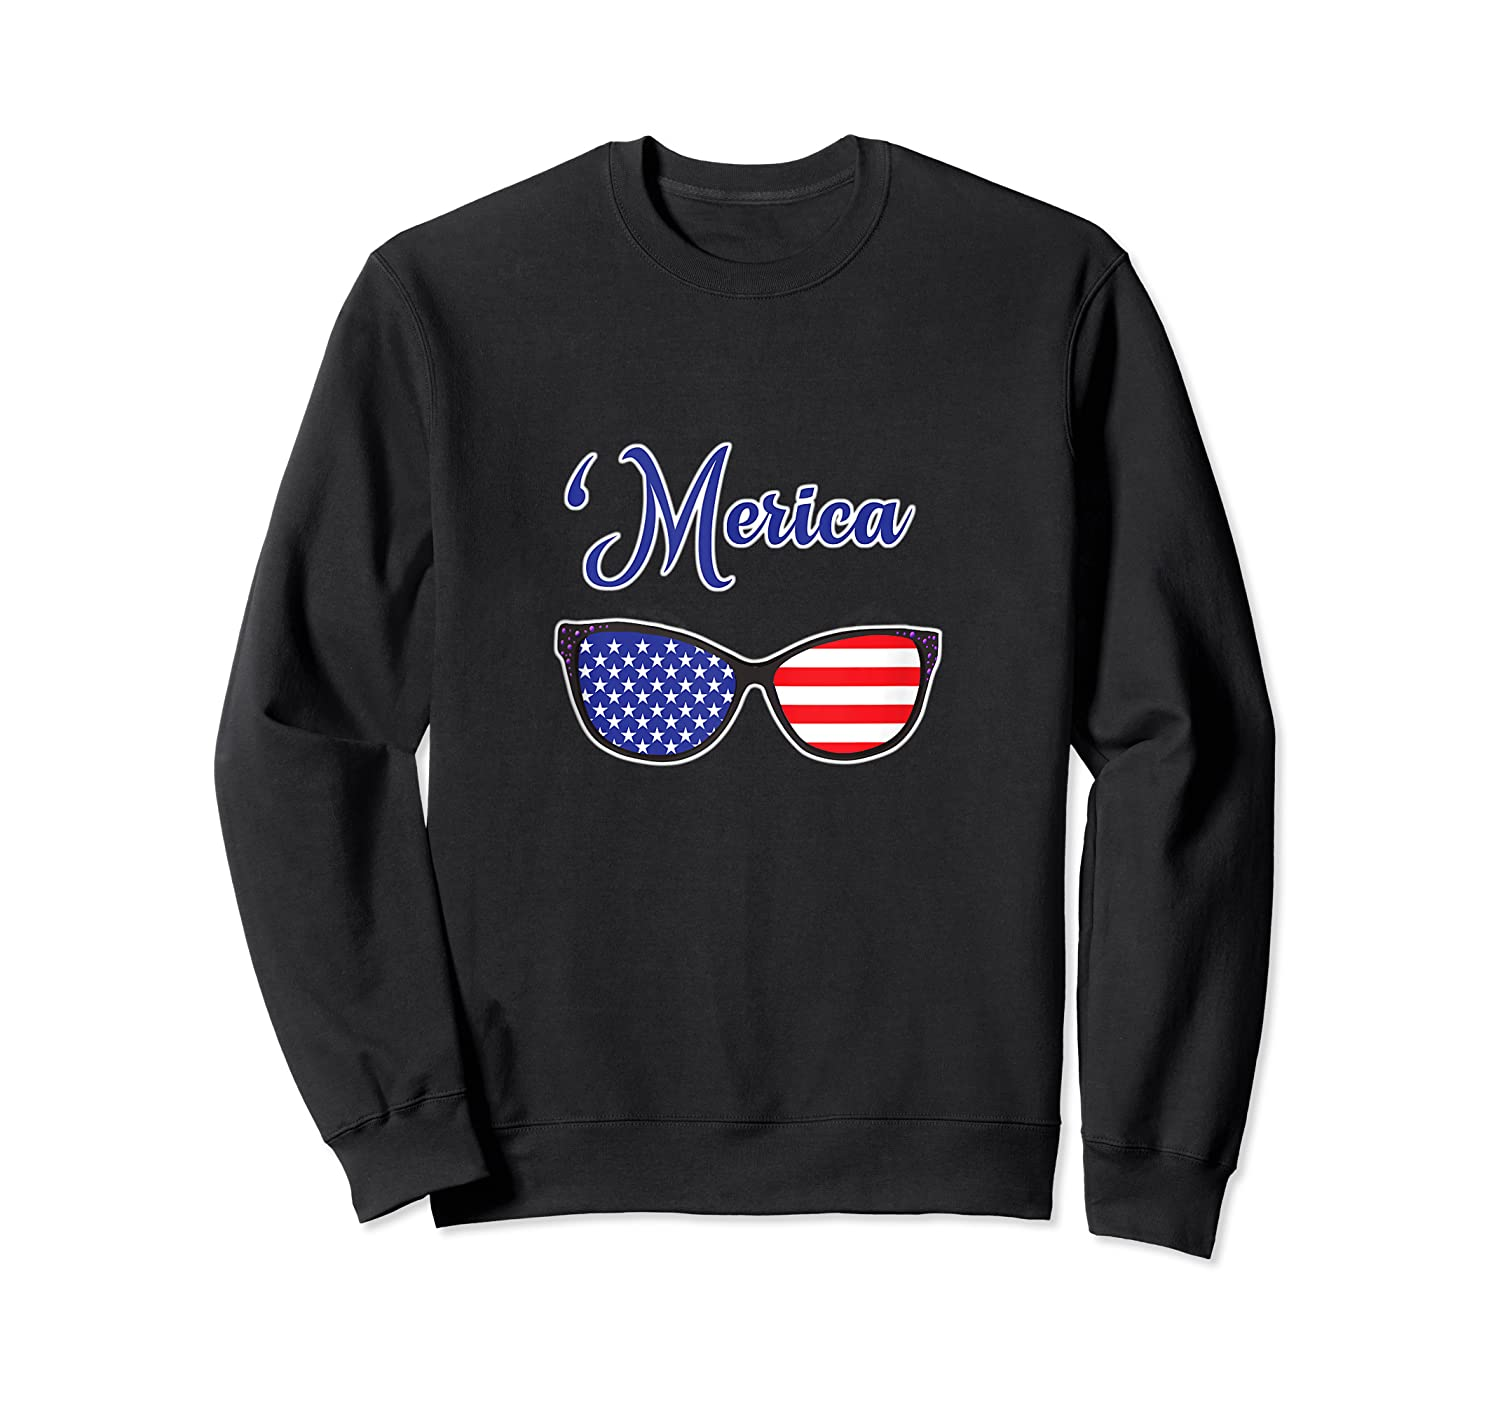 Merica Patriotic Memorial Day July 4th And Election Tank Top Shirts Crewneck Sweater